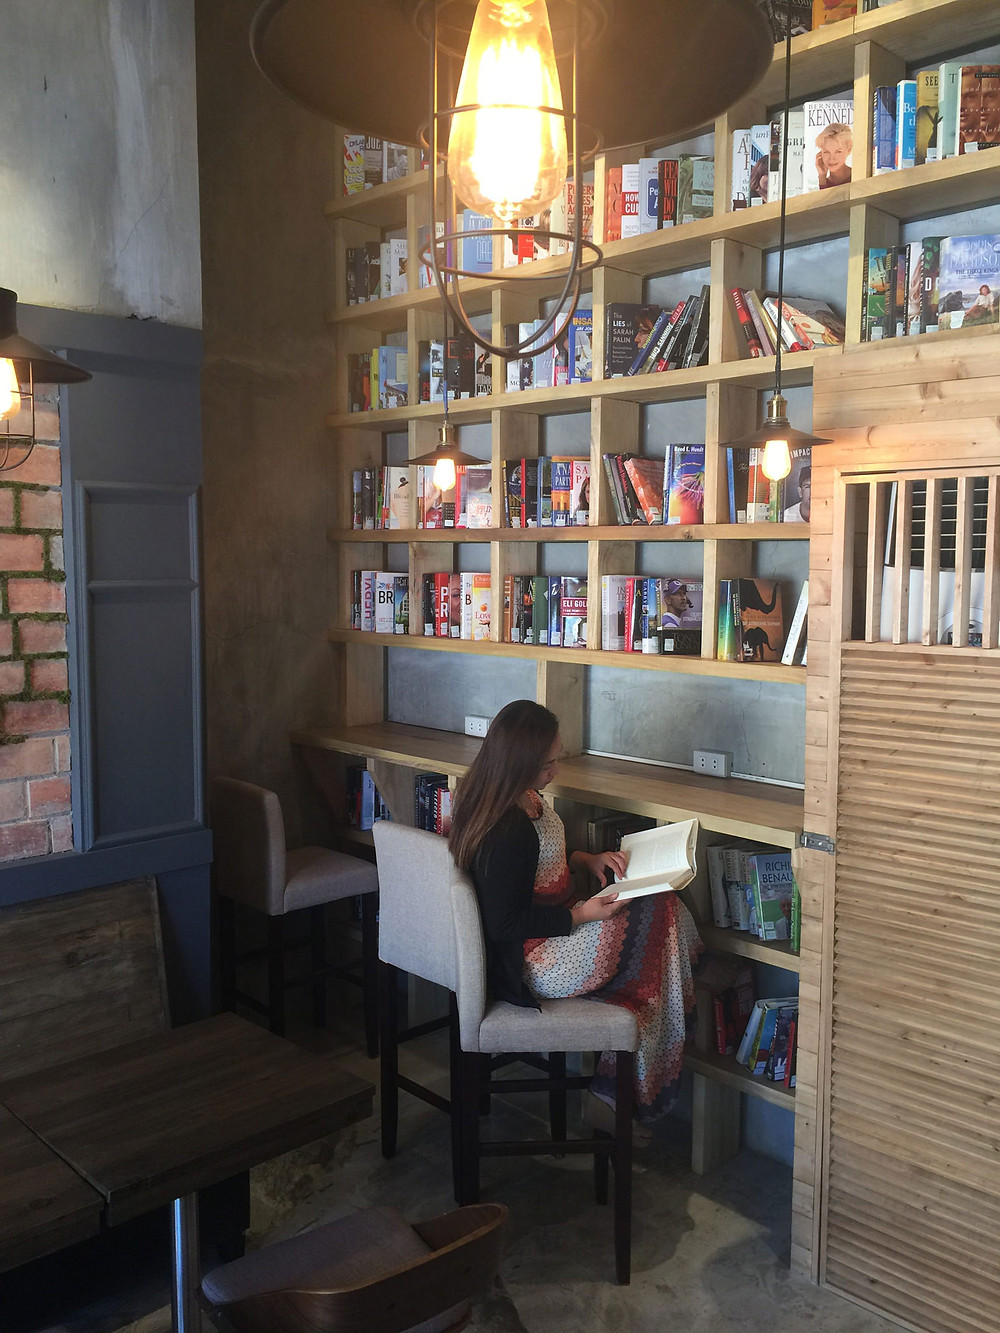 Coffee Shop with Whopping Study Ambiance